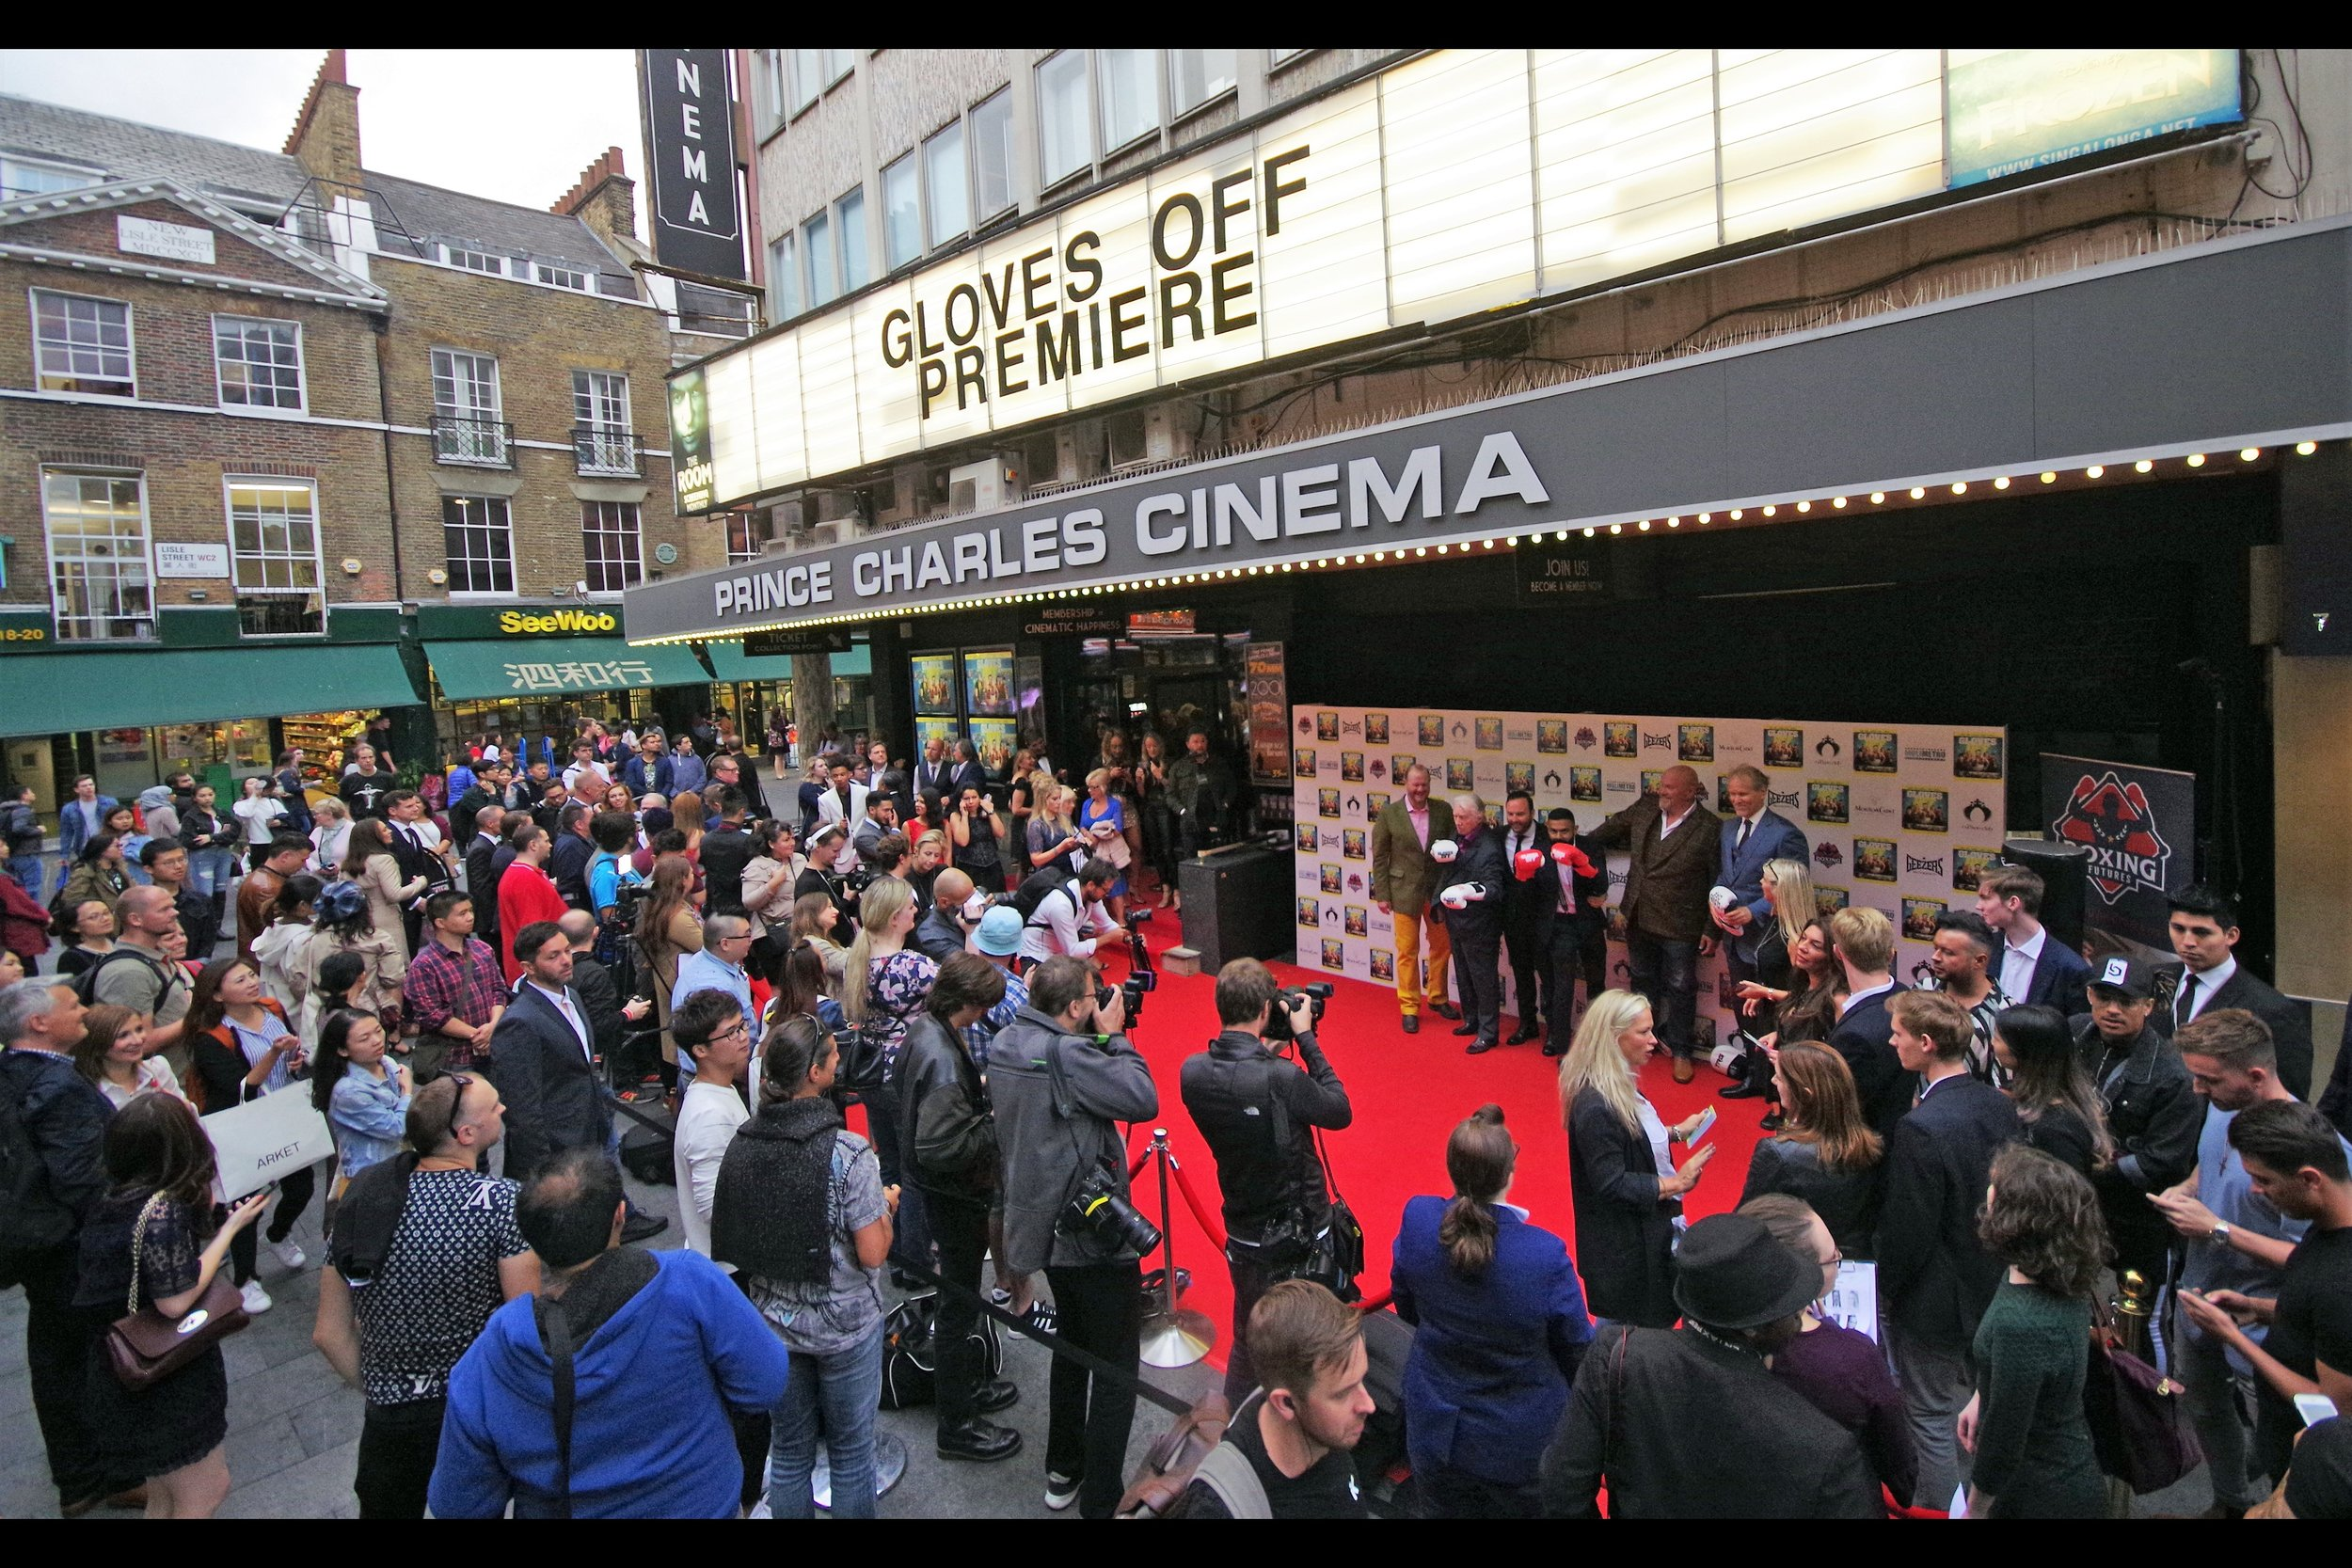 Wide-angle lens on a 6-foot monopod means I can do this. (I brought the monopod to the    Blake Lively premiere on Monday   , but there it was a failsafe, whereas here it's a choice)